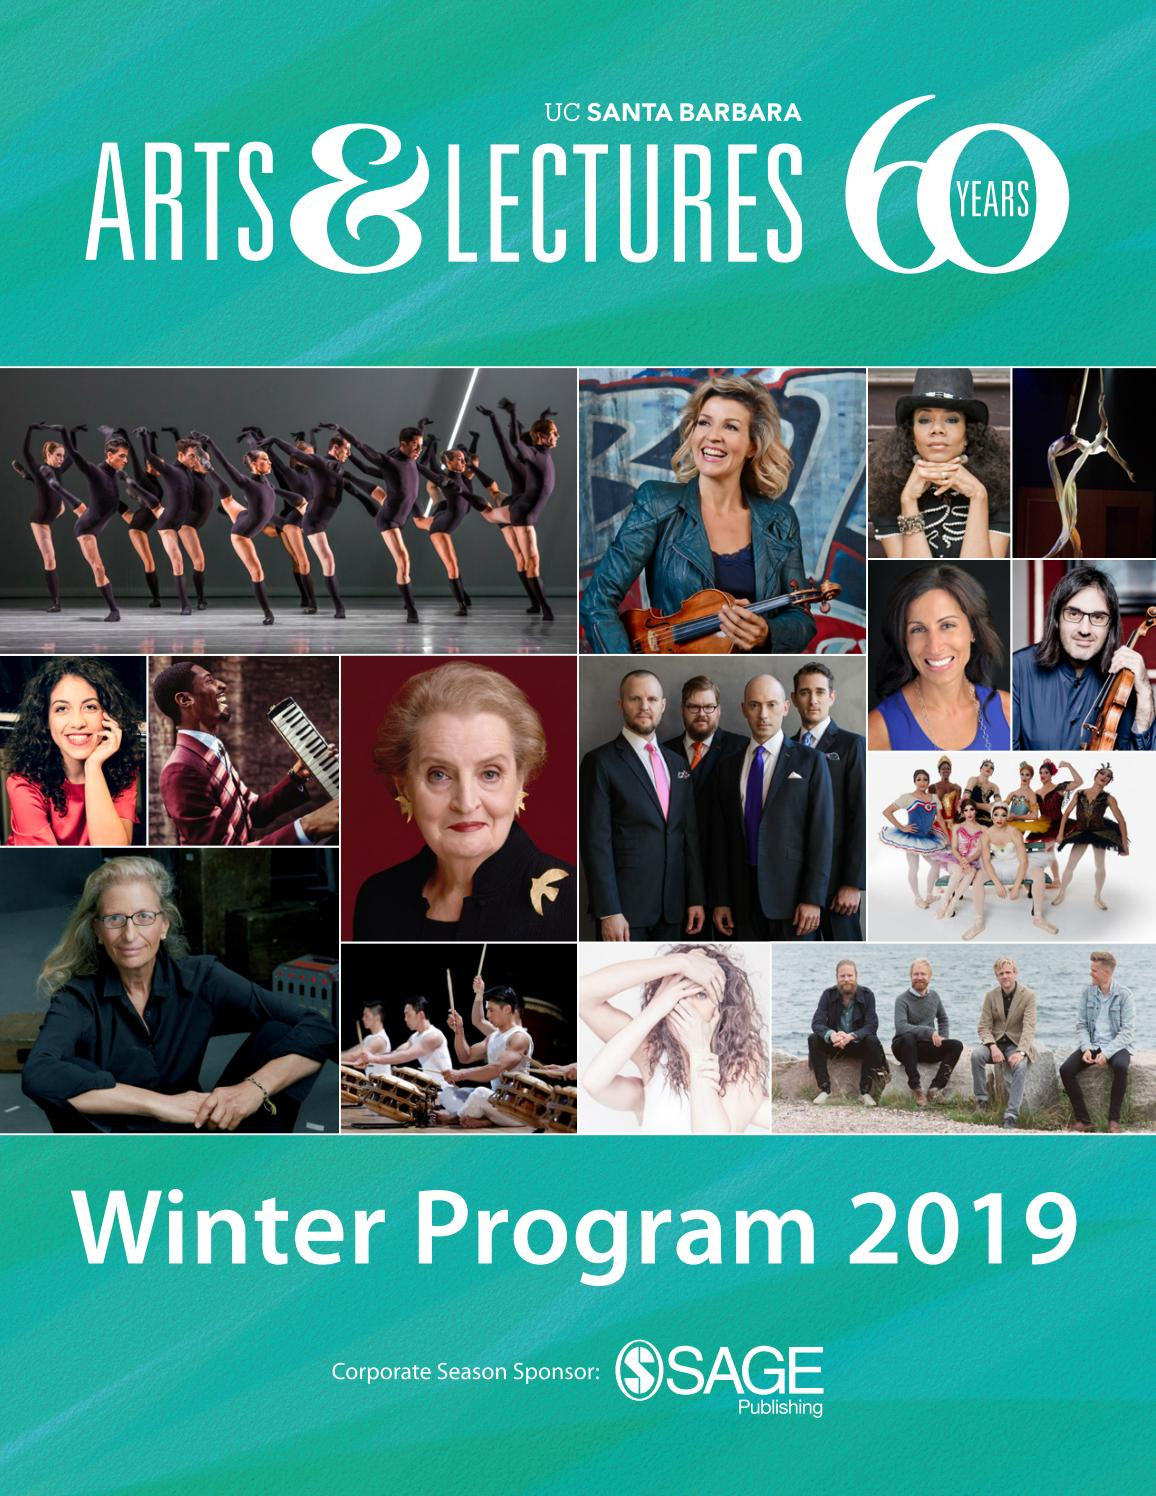 ucsb arts lectures winter program 2019 by ucsb arts. Black Bedroom Furniture Sets. Home Design Ideas